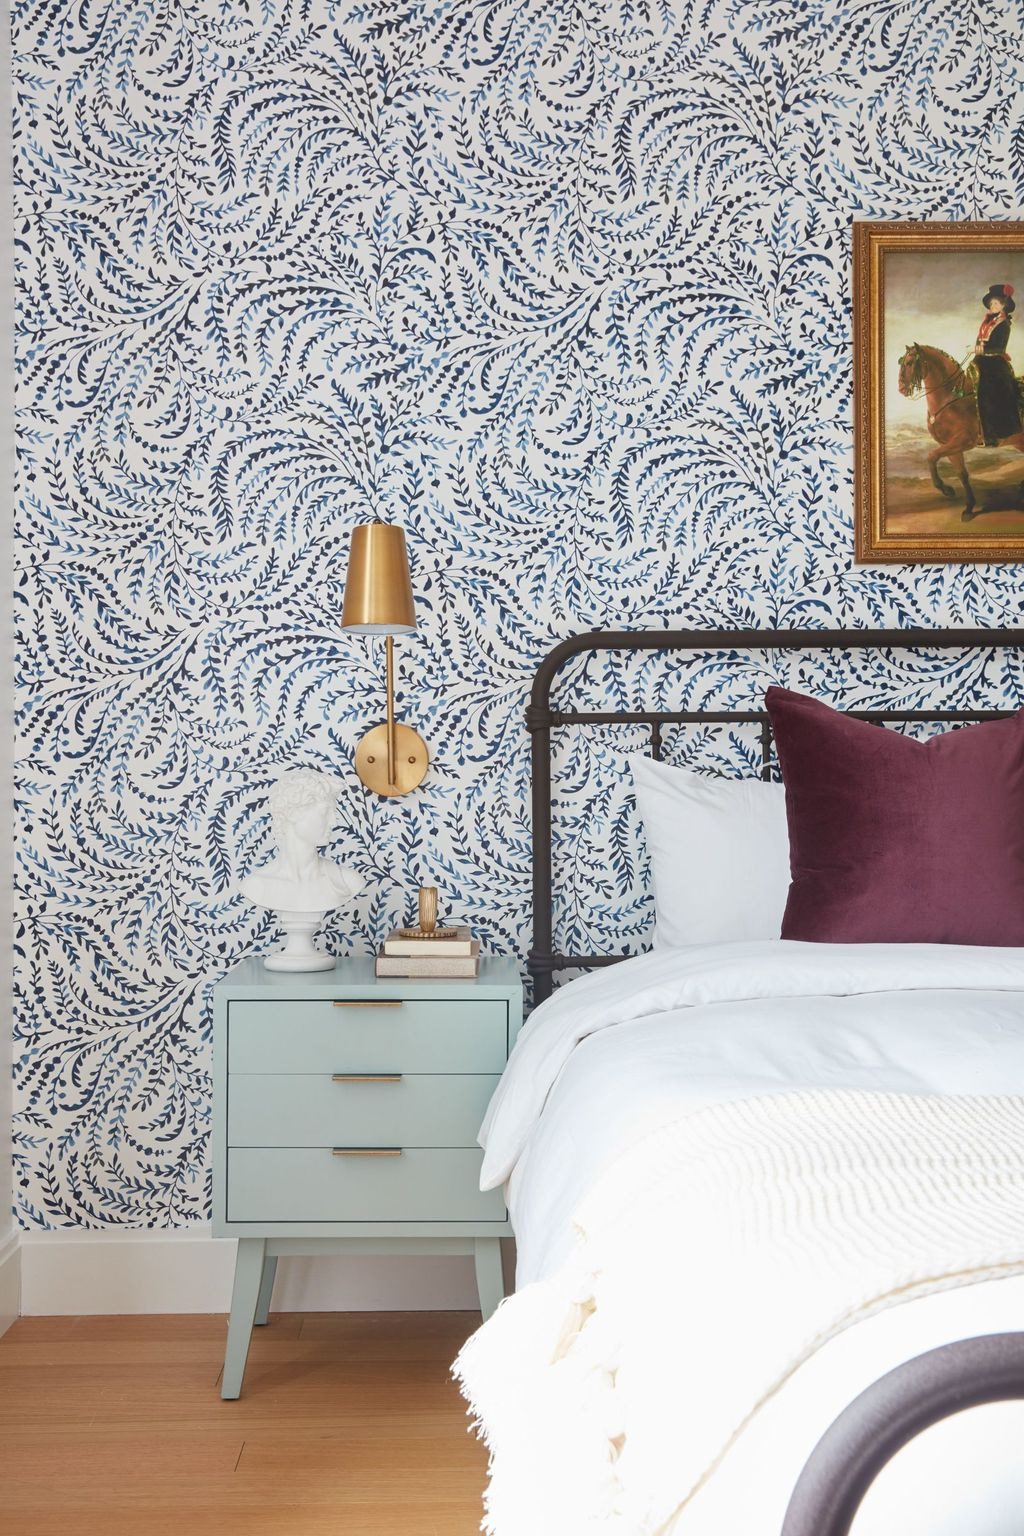 Best Bedroom Wallpaper Decor Ideas That Suitable For Your Family 09